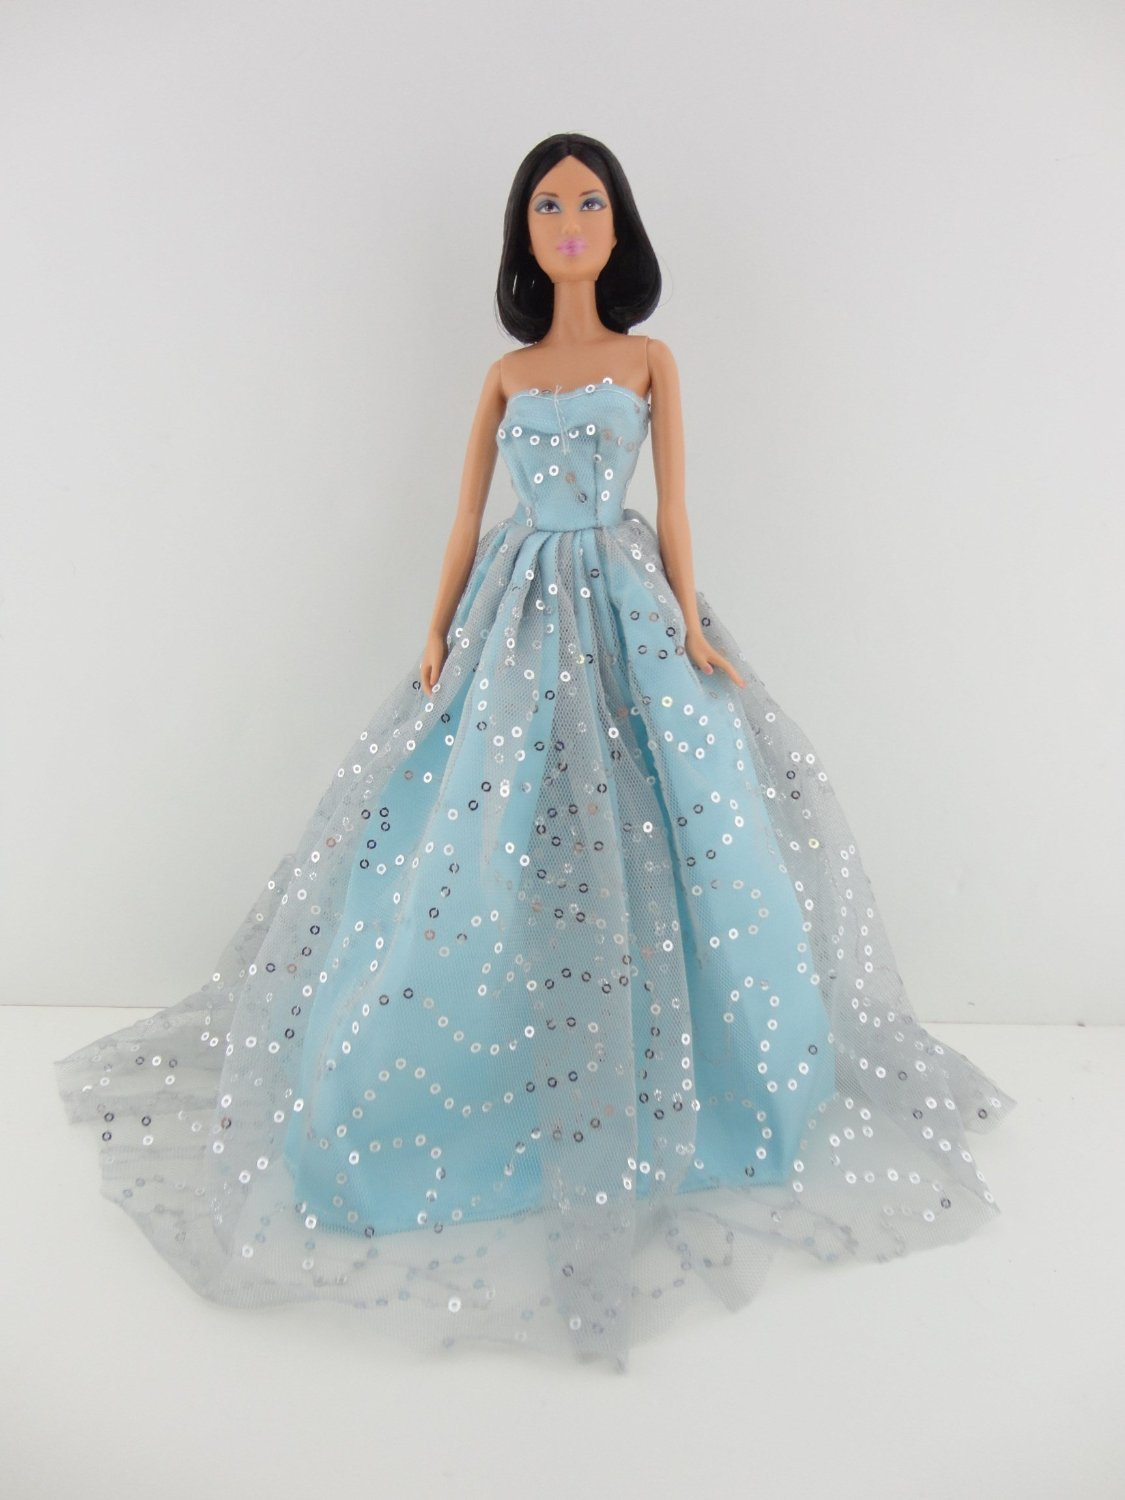 Amazon.com: A Light Blue Ball Gown with Lots of Sparkle Made to Fit ...